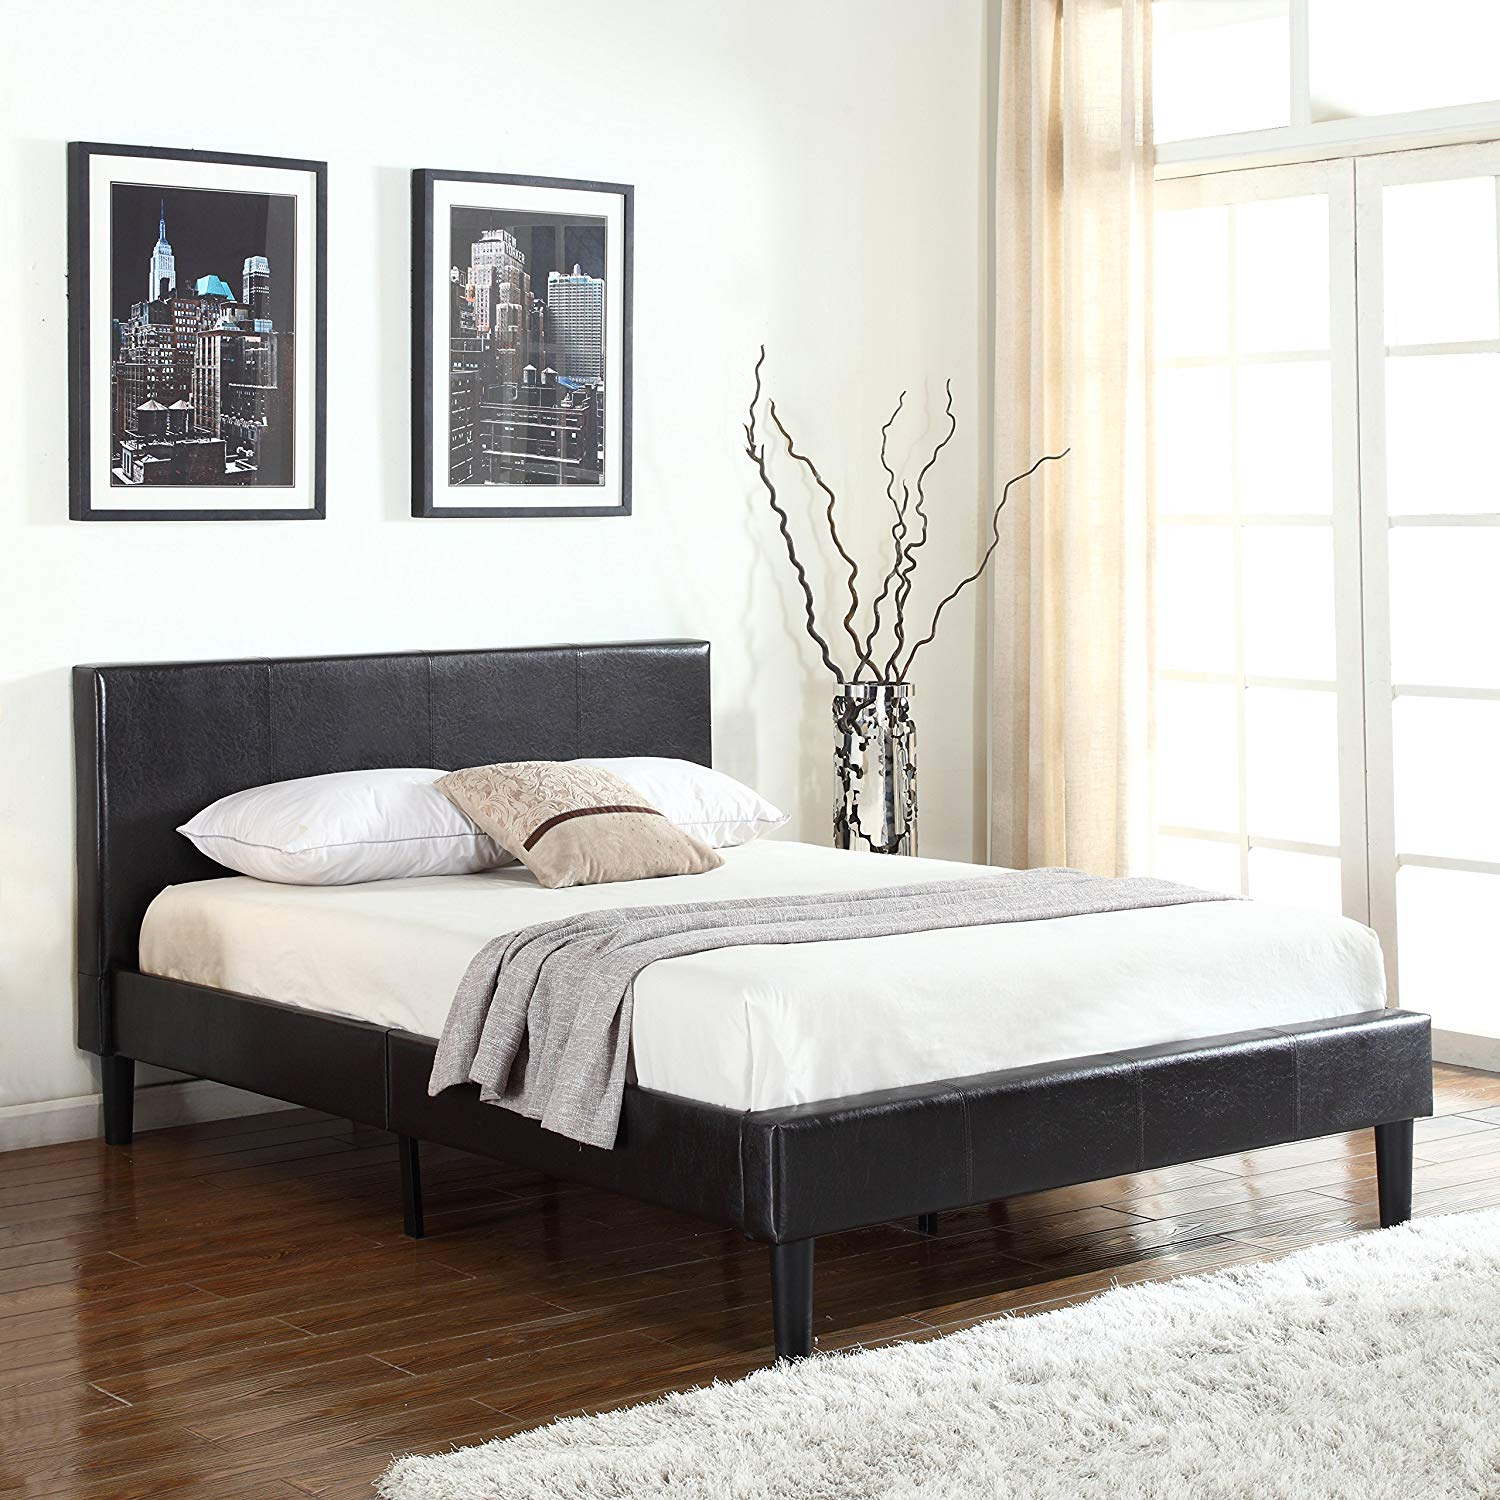 Classic deluxe bonded leather low profile platform bed frame w paneled headboard design